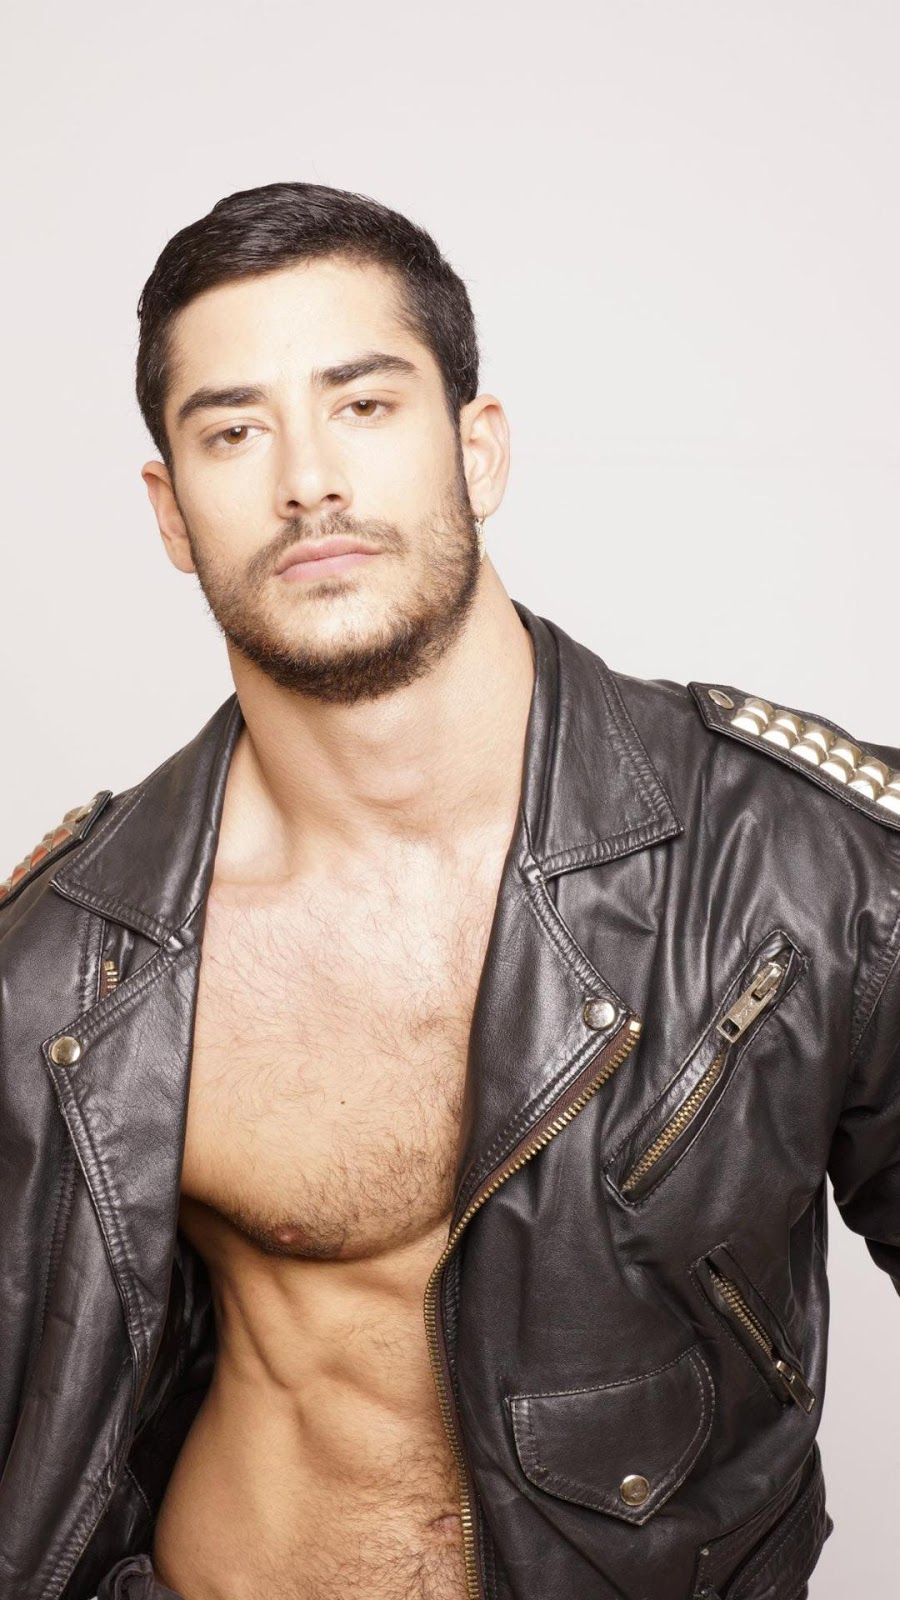 Hairy chest leather jacket